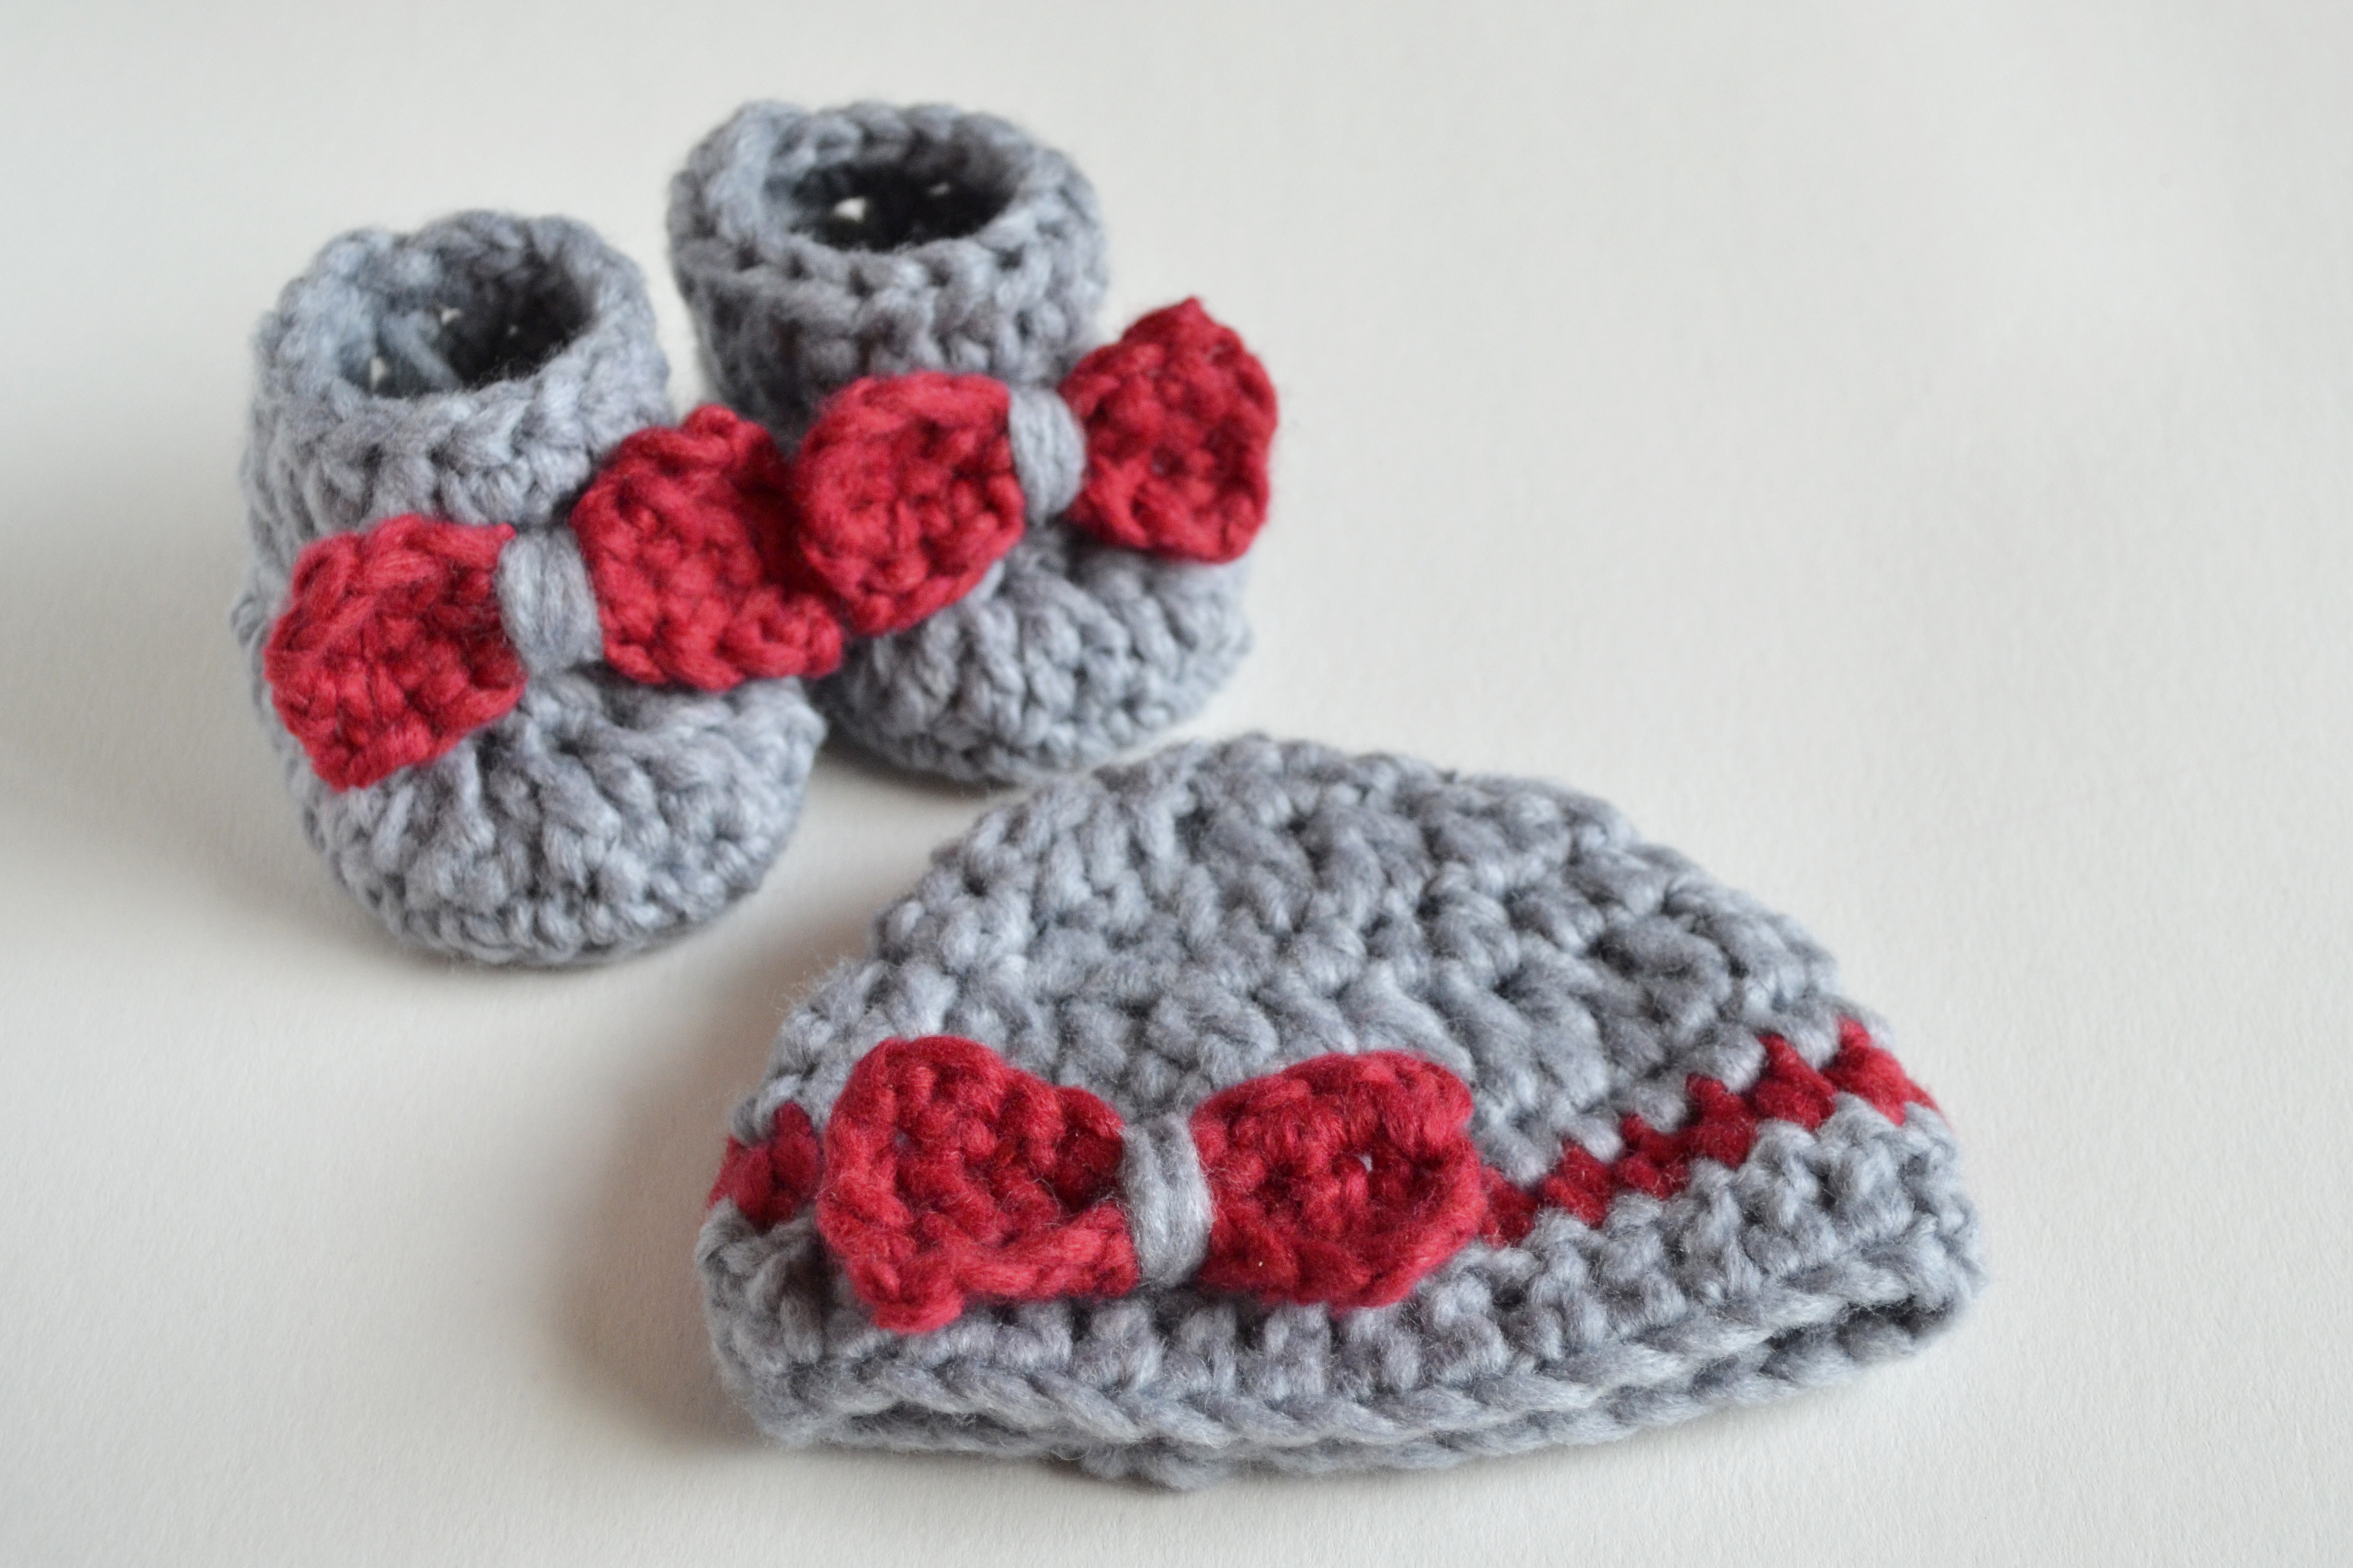 Crochet Booties Unique so Fluffy – Crochet Baby Booties and Beanie Free – Croby Of Wonderful 43 Pics Crochet Booties